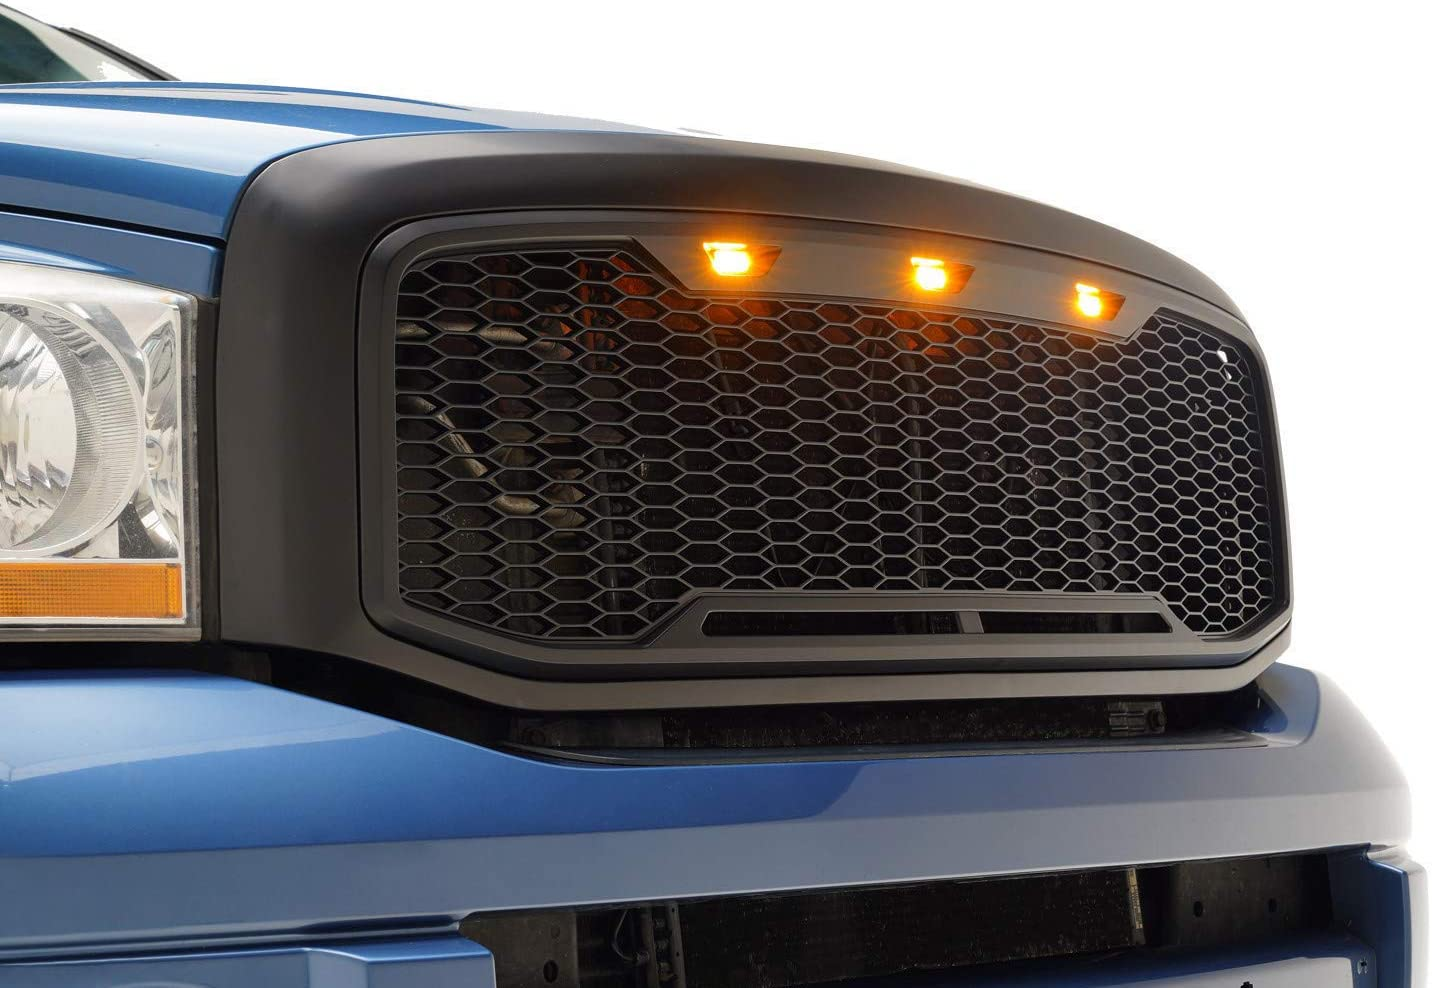 amazon com eag replacement upper abs grille led grill with amber led lights matte black fit for 06 08 dodge ram 1500 06 09 dodge ram 2500 3500 automotive eag replacement upper abs grille led grill with amber led lights matte black fit for 06 08 dodge ram 1500 06 09 dodge ram 2500 3500